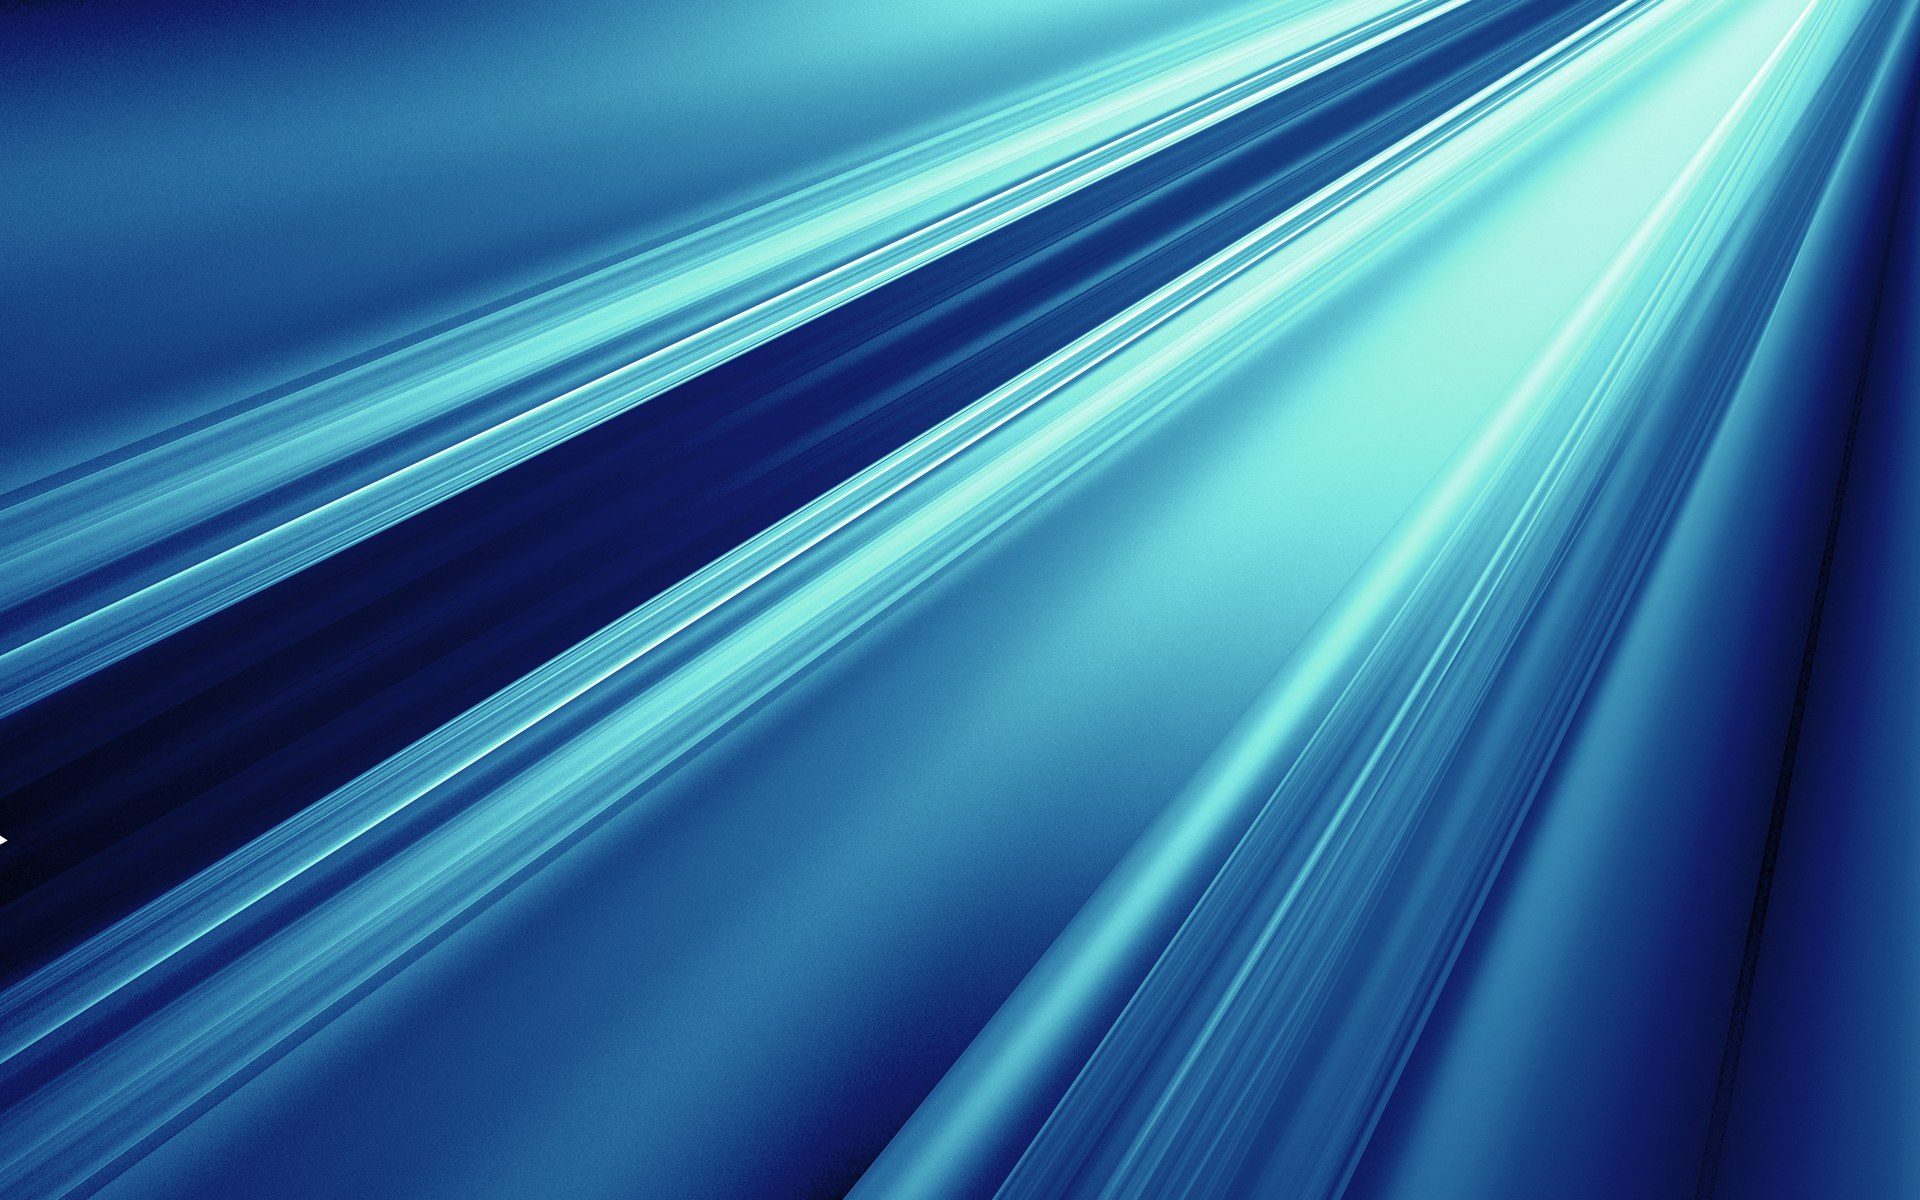 HD Abstract Blue Background - Blue Abstract Light Effect 1920*1200 NO